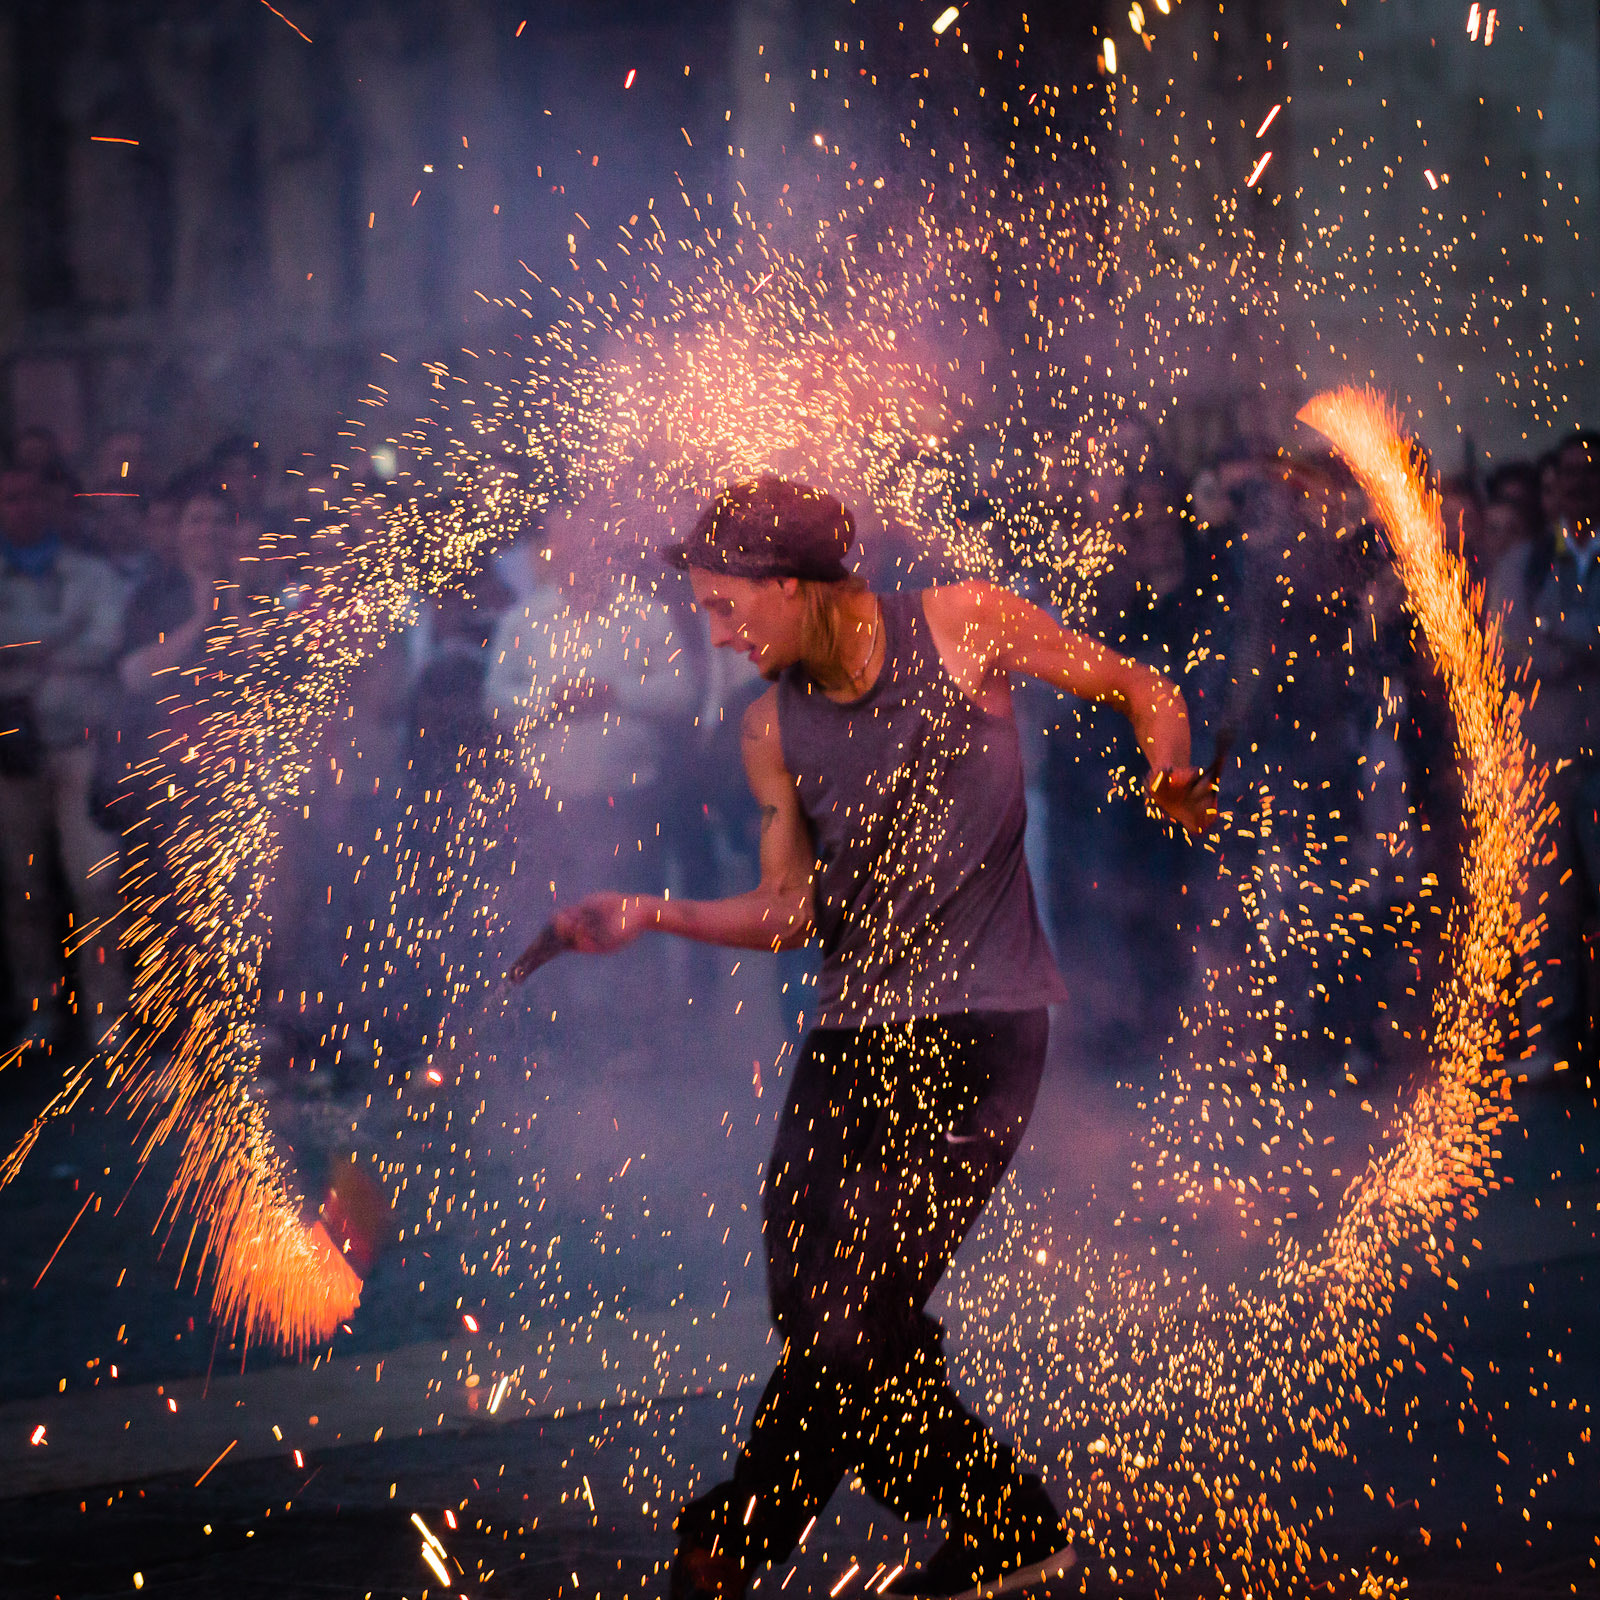 Photograph Dance with fire by Marc Besancenot on 500px